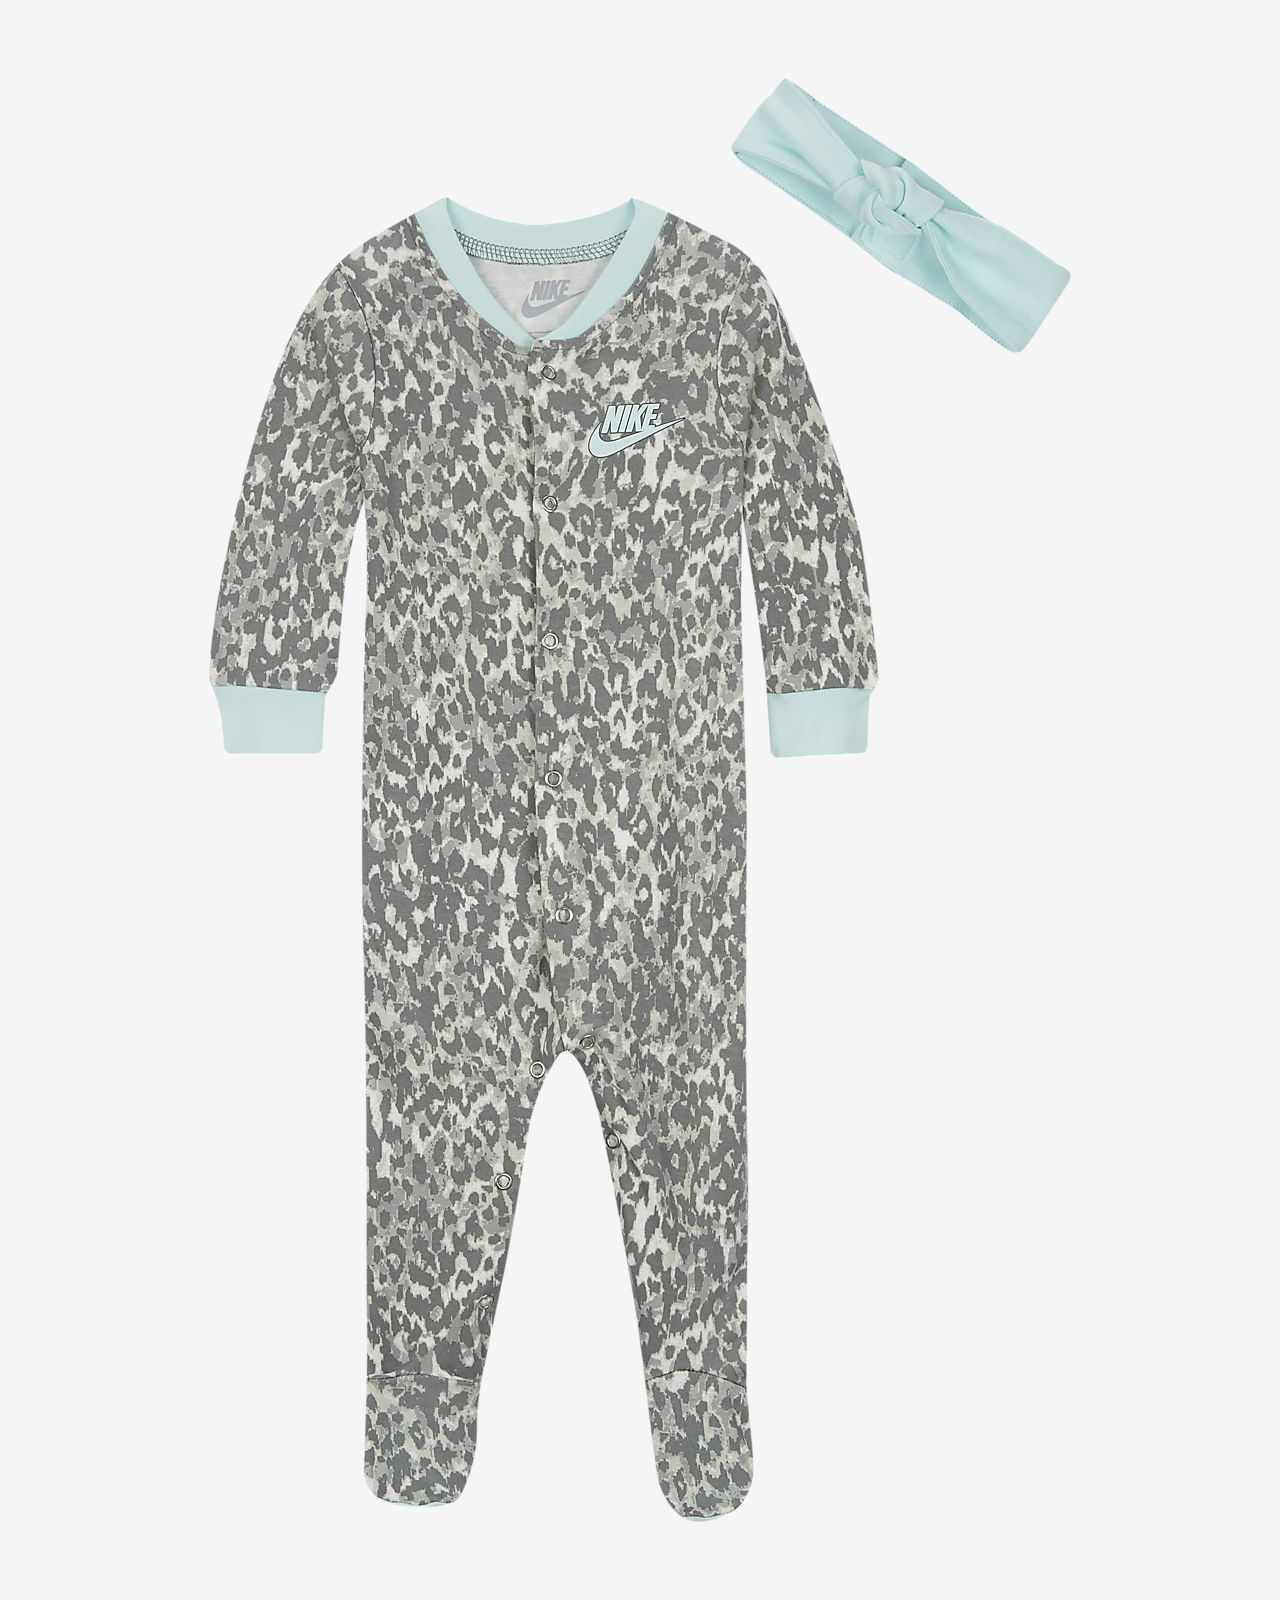 Nike Baby (0–9M) Overalls and Headband Set